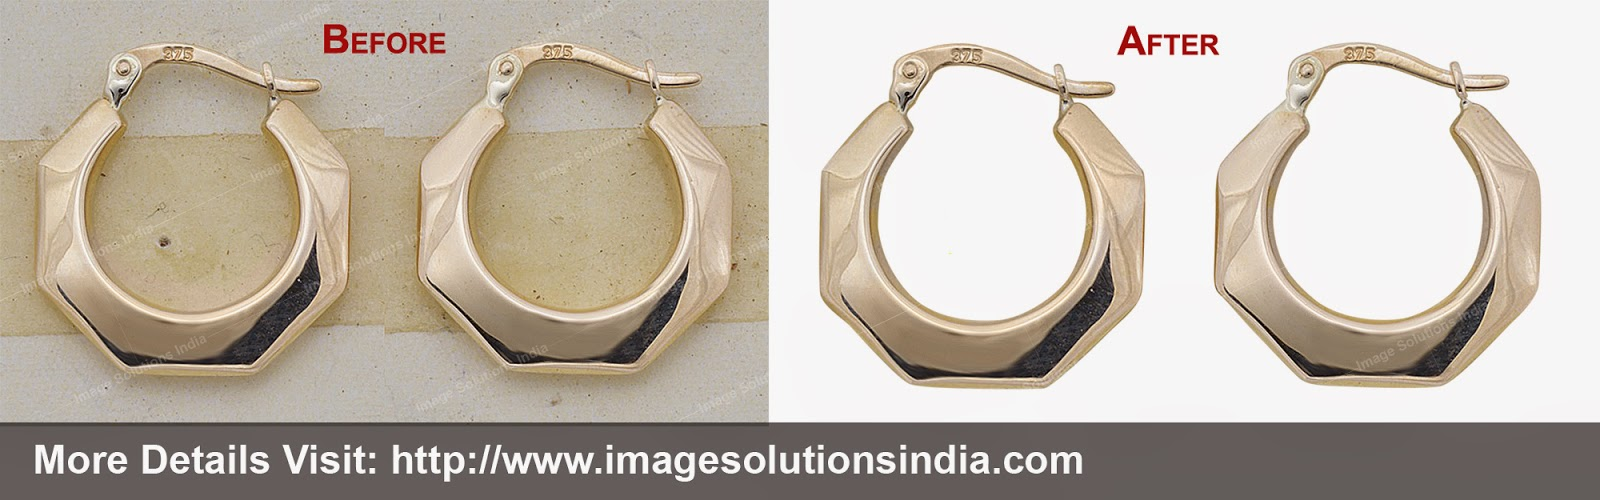 image editing services in bangalore